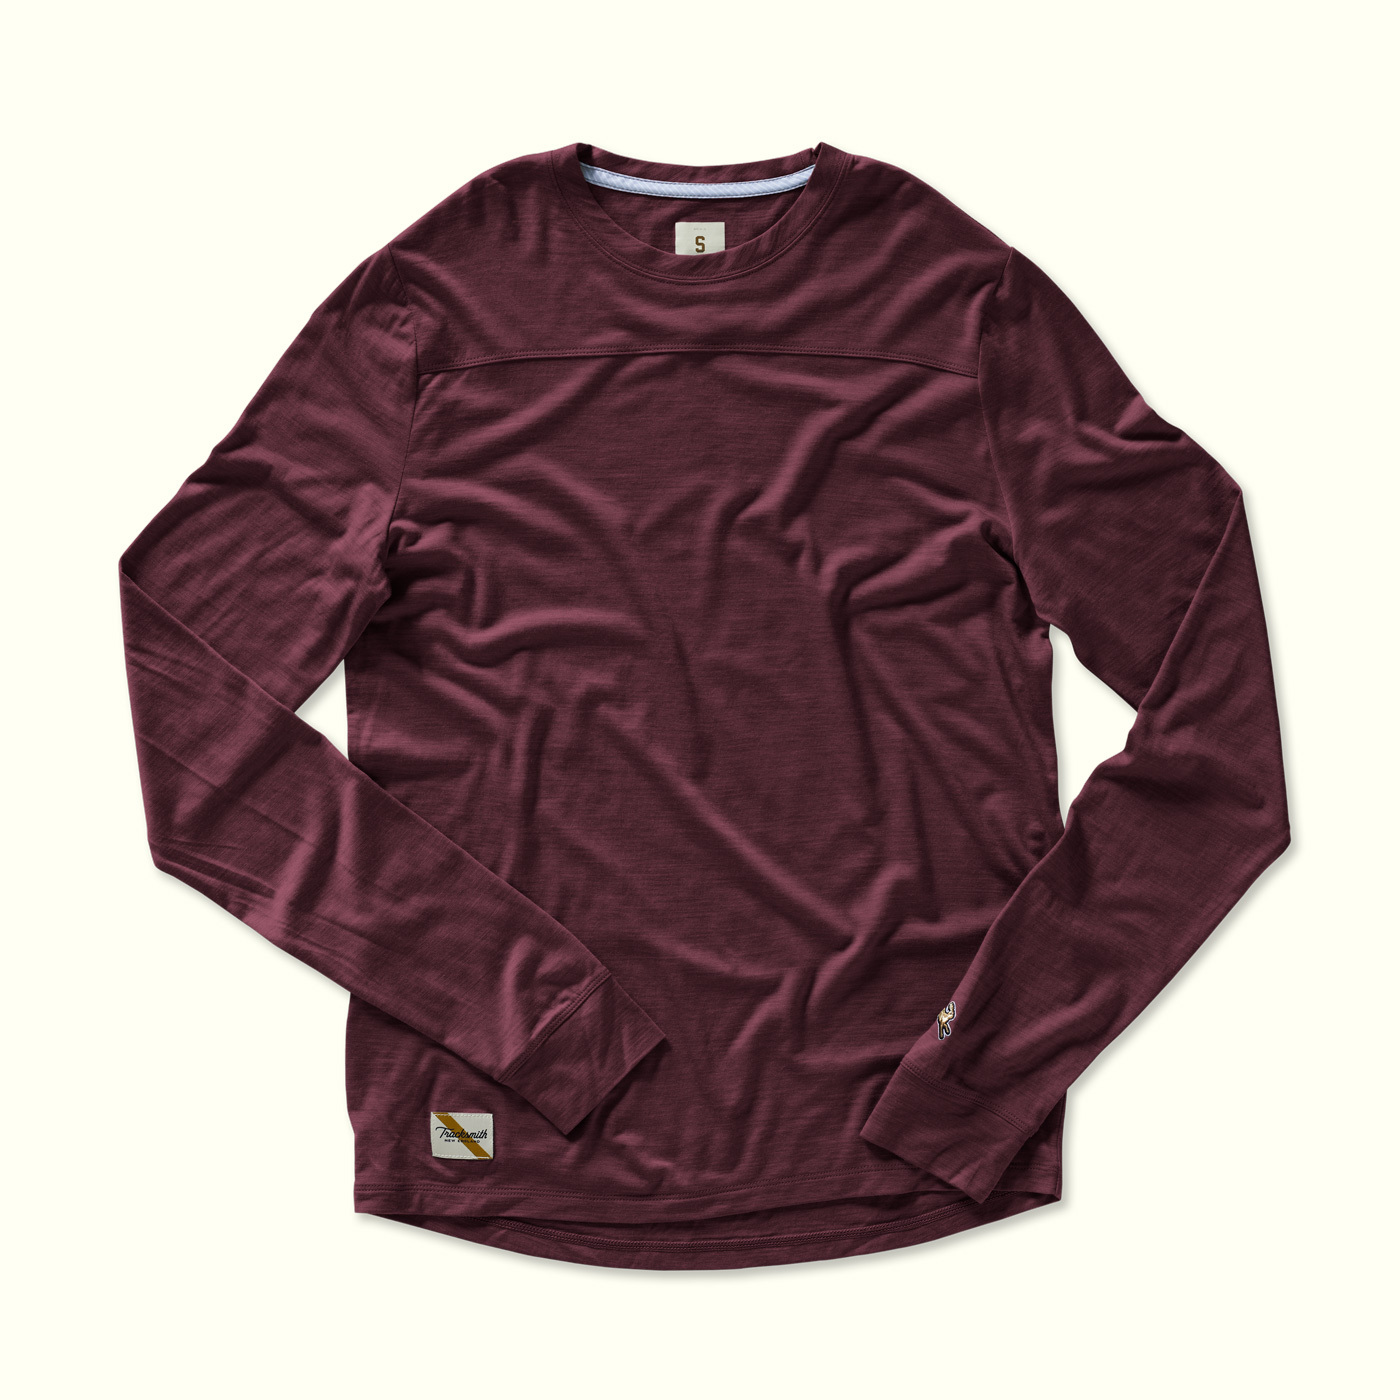 Men's long-sleeve Harrier top.